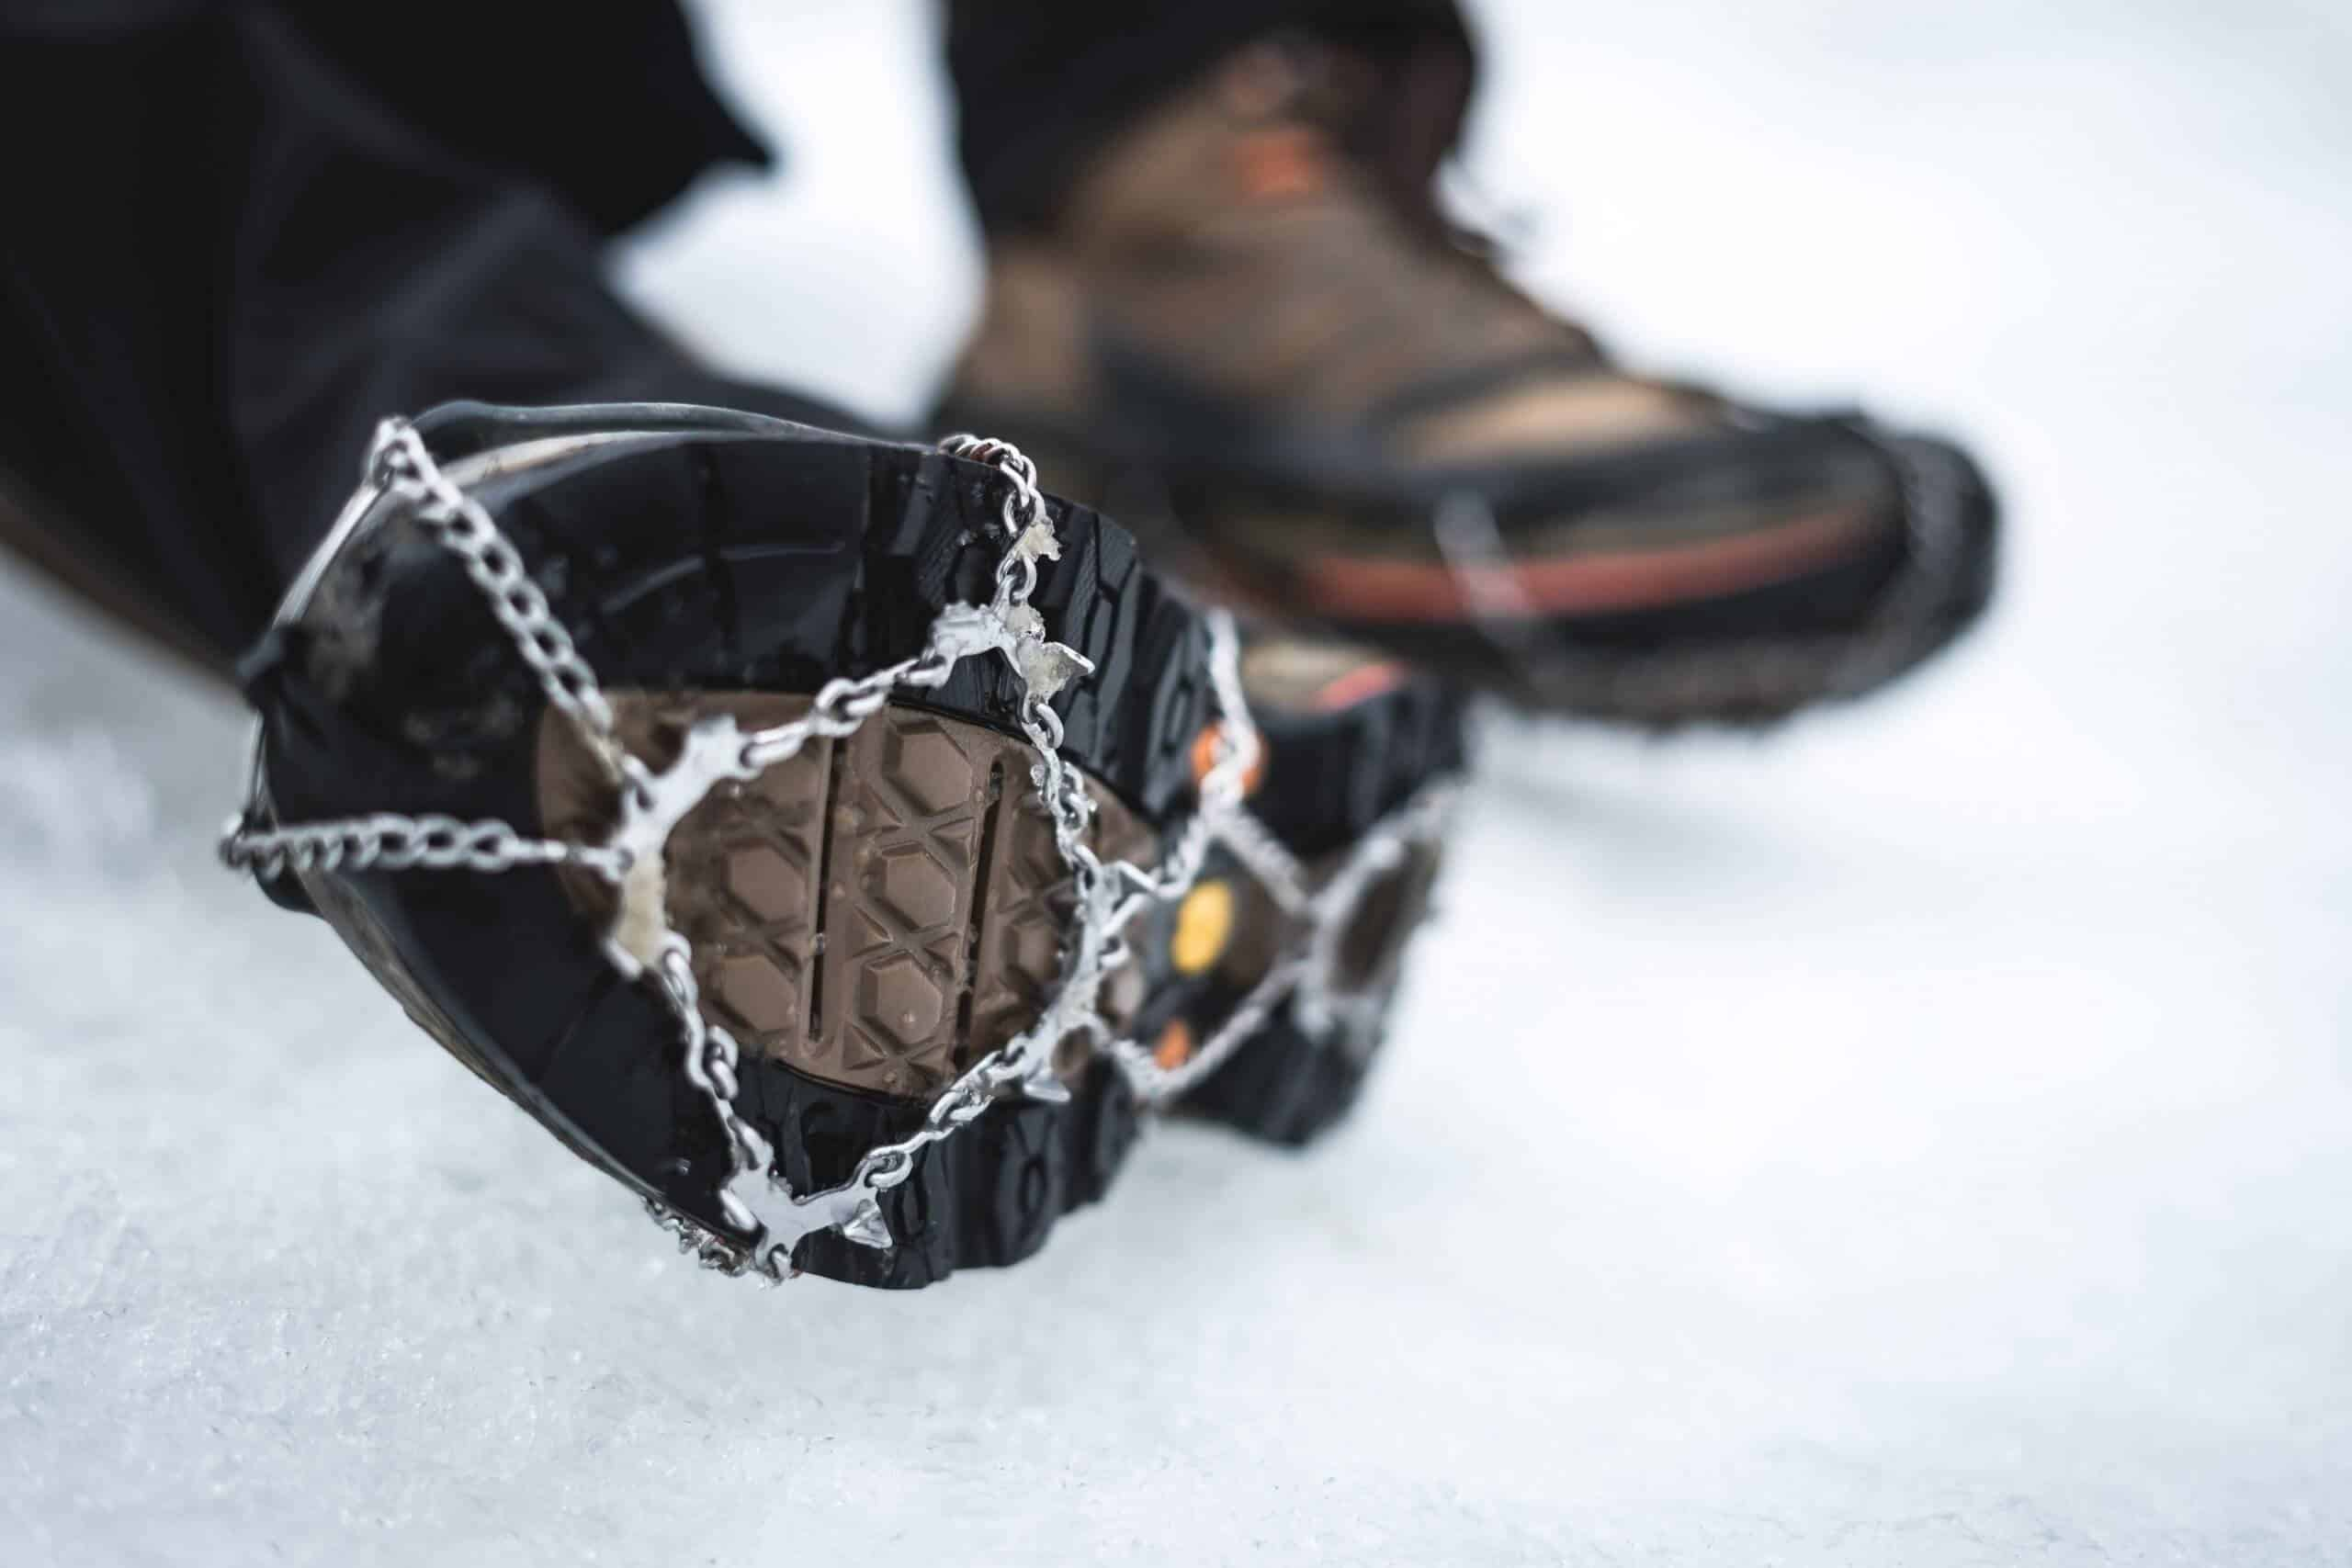 Some of the best ice cleats attached to boots